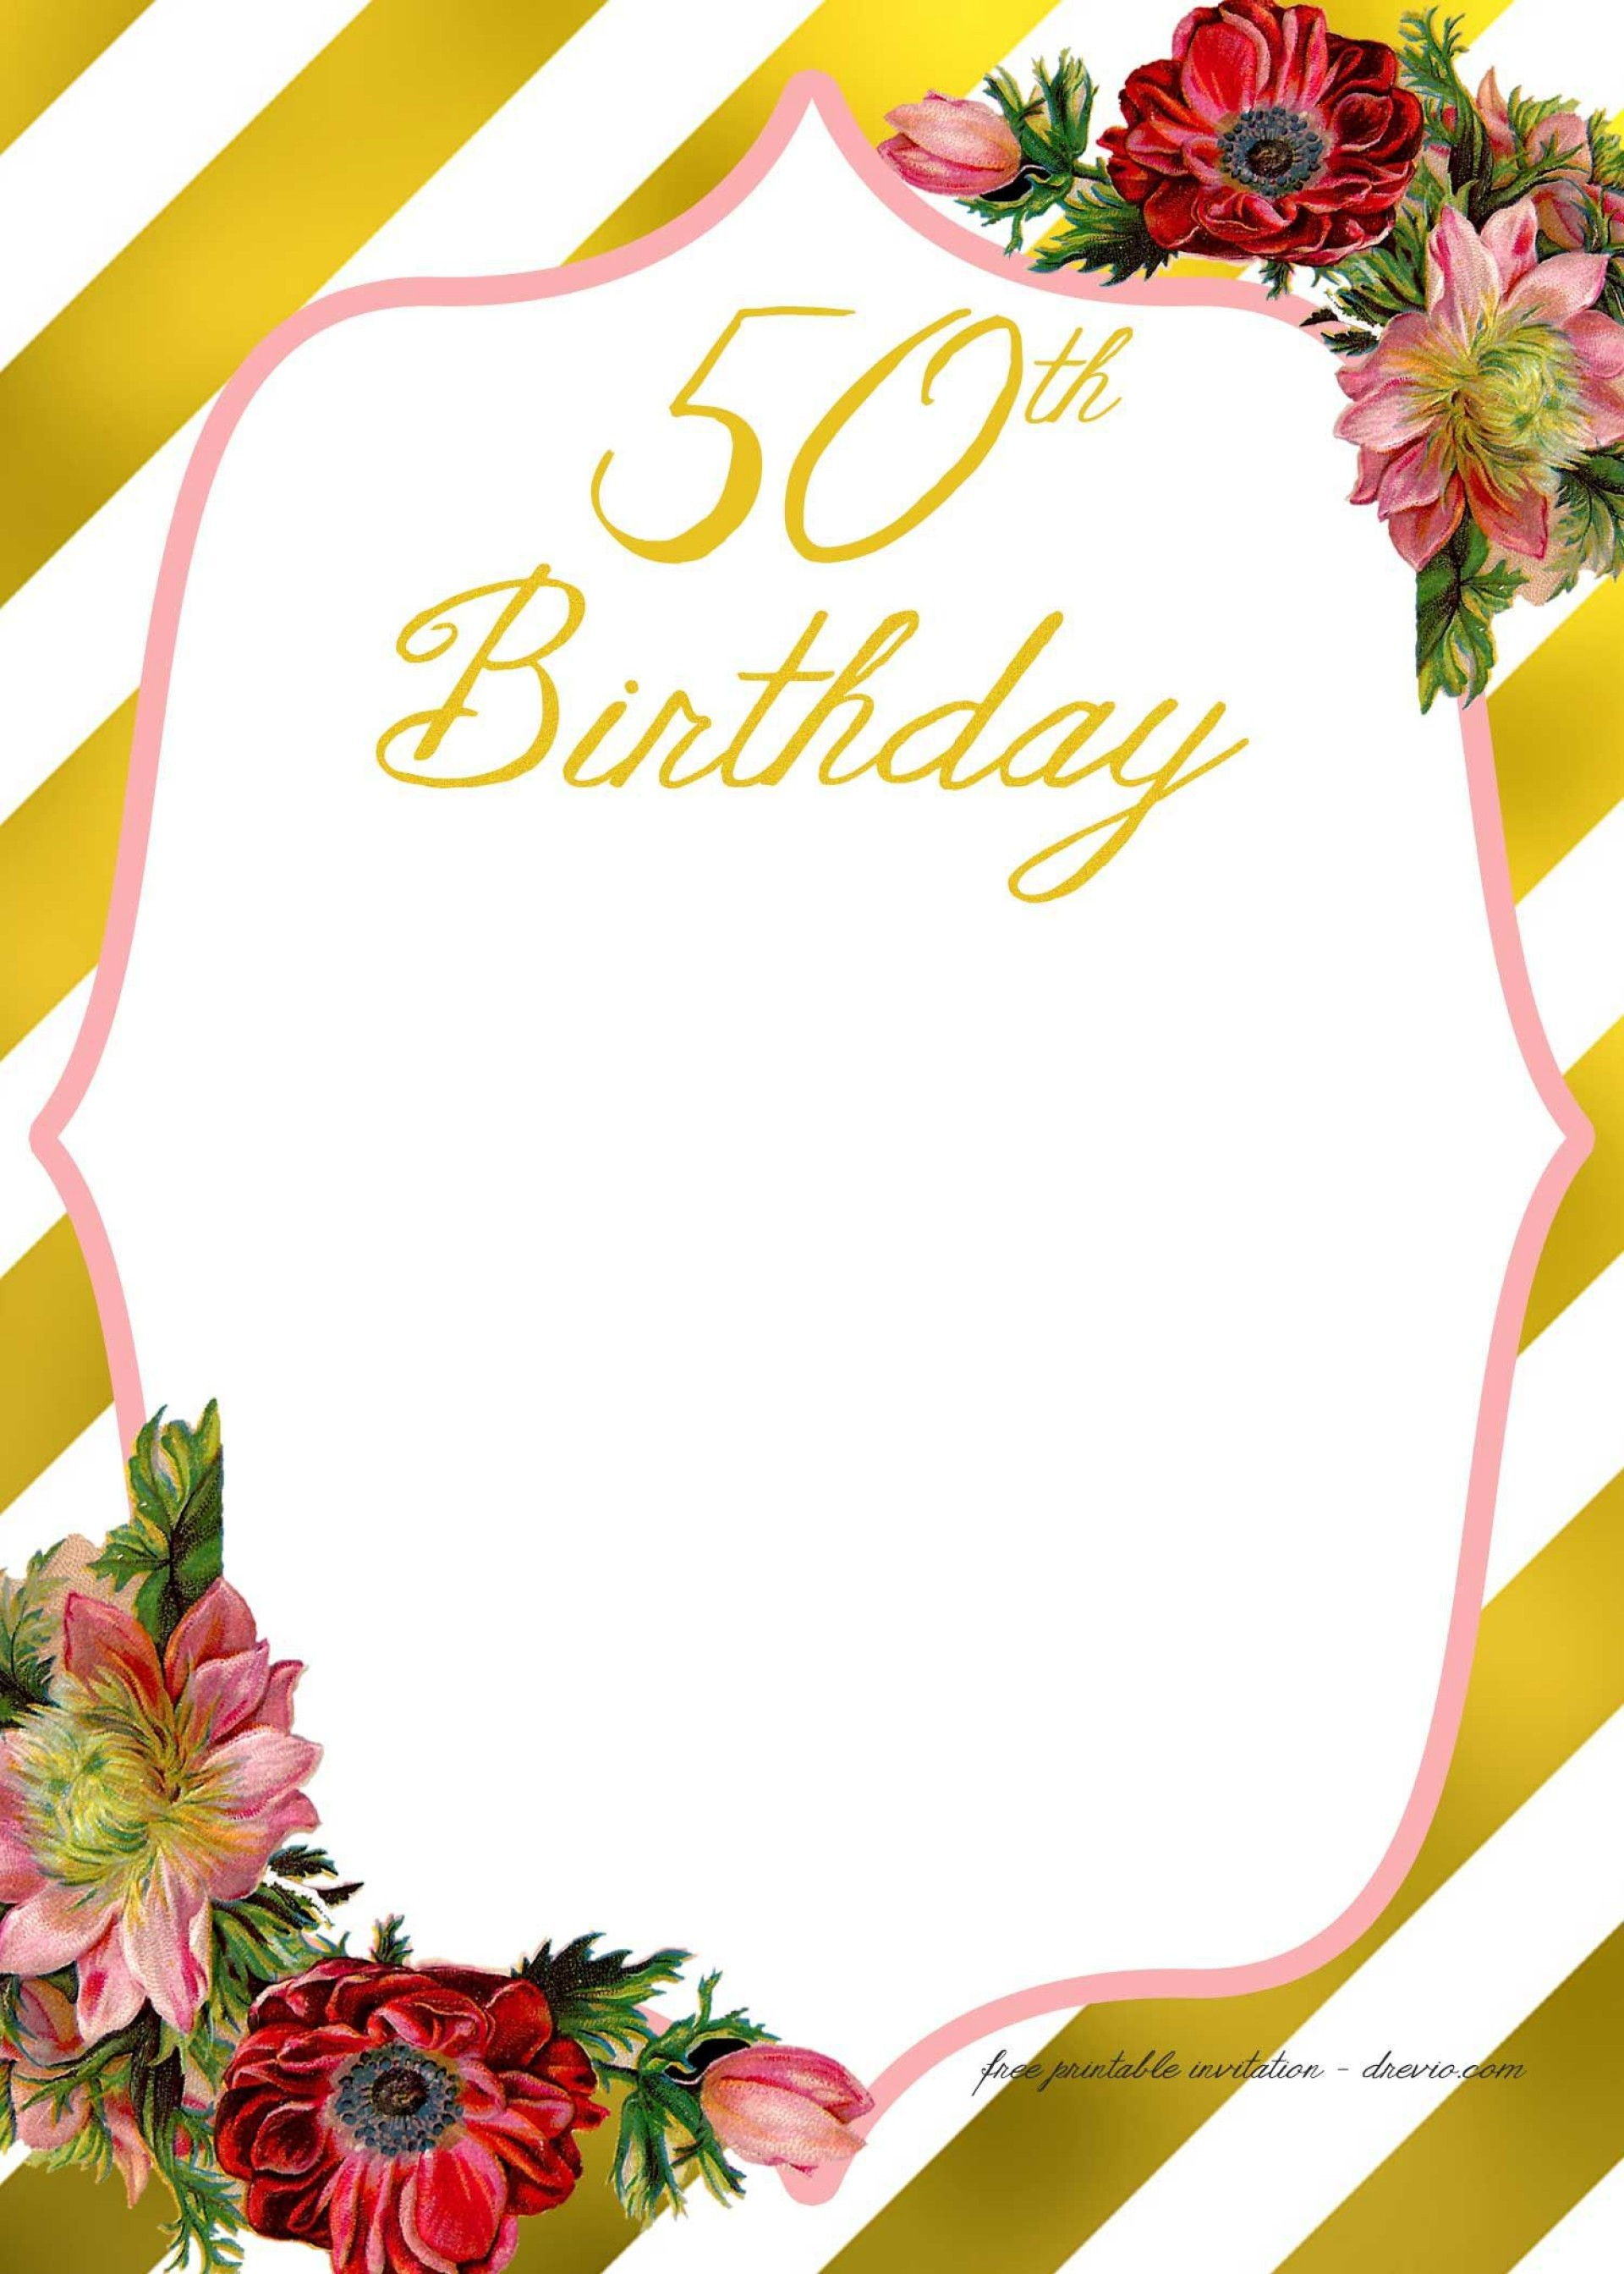 008 Simple 60th Birthday Invitation Template High Resolution  Card Free Download1920